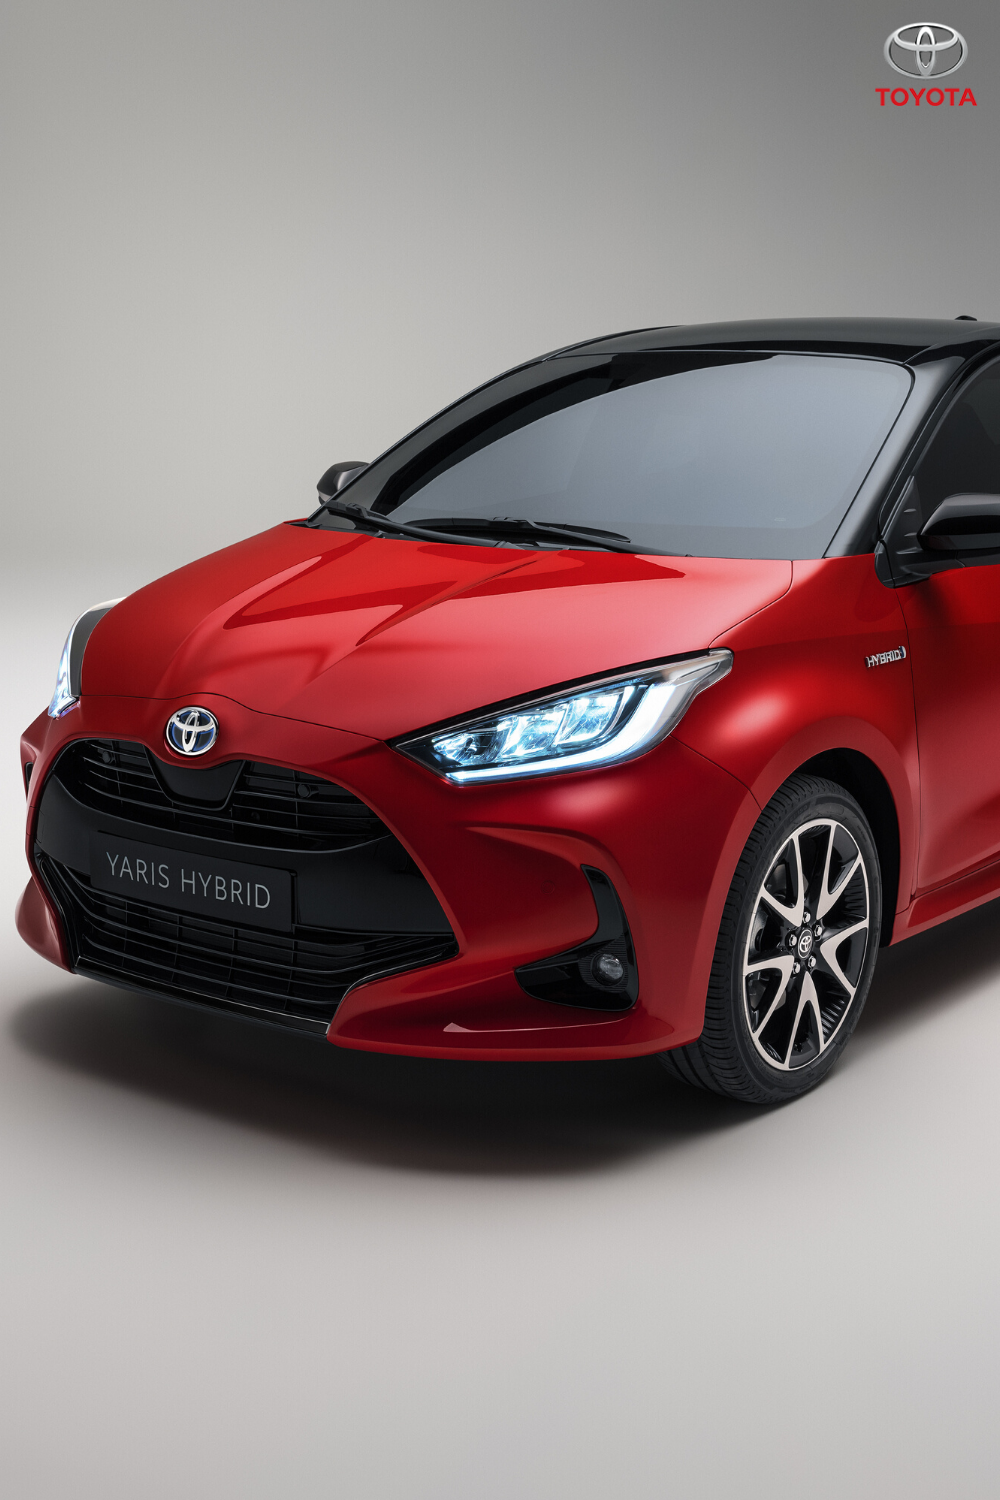 Designed for city living. The all-new Toyota Yaris. Click to find out more. #Toyota #ToyotaYaris #SmallCar #CompactCar #CityLiving #HybridCar